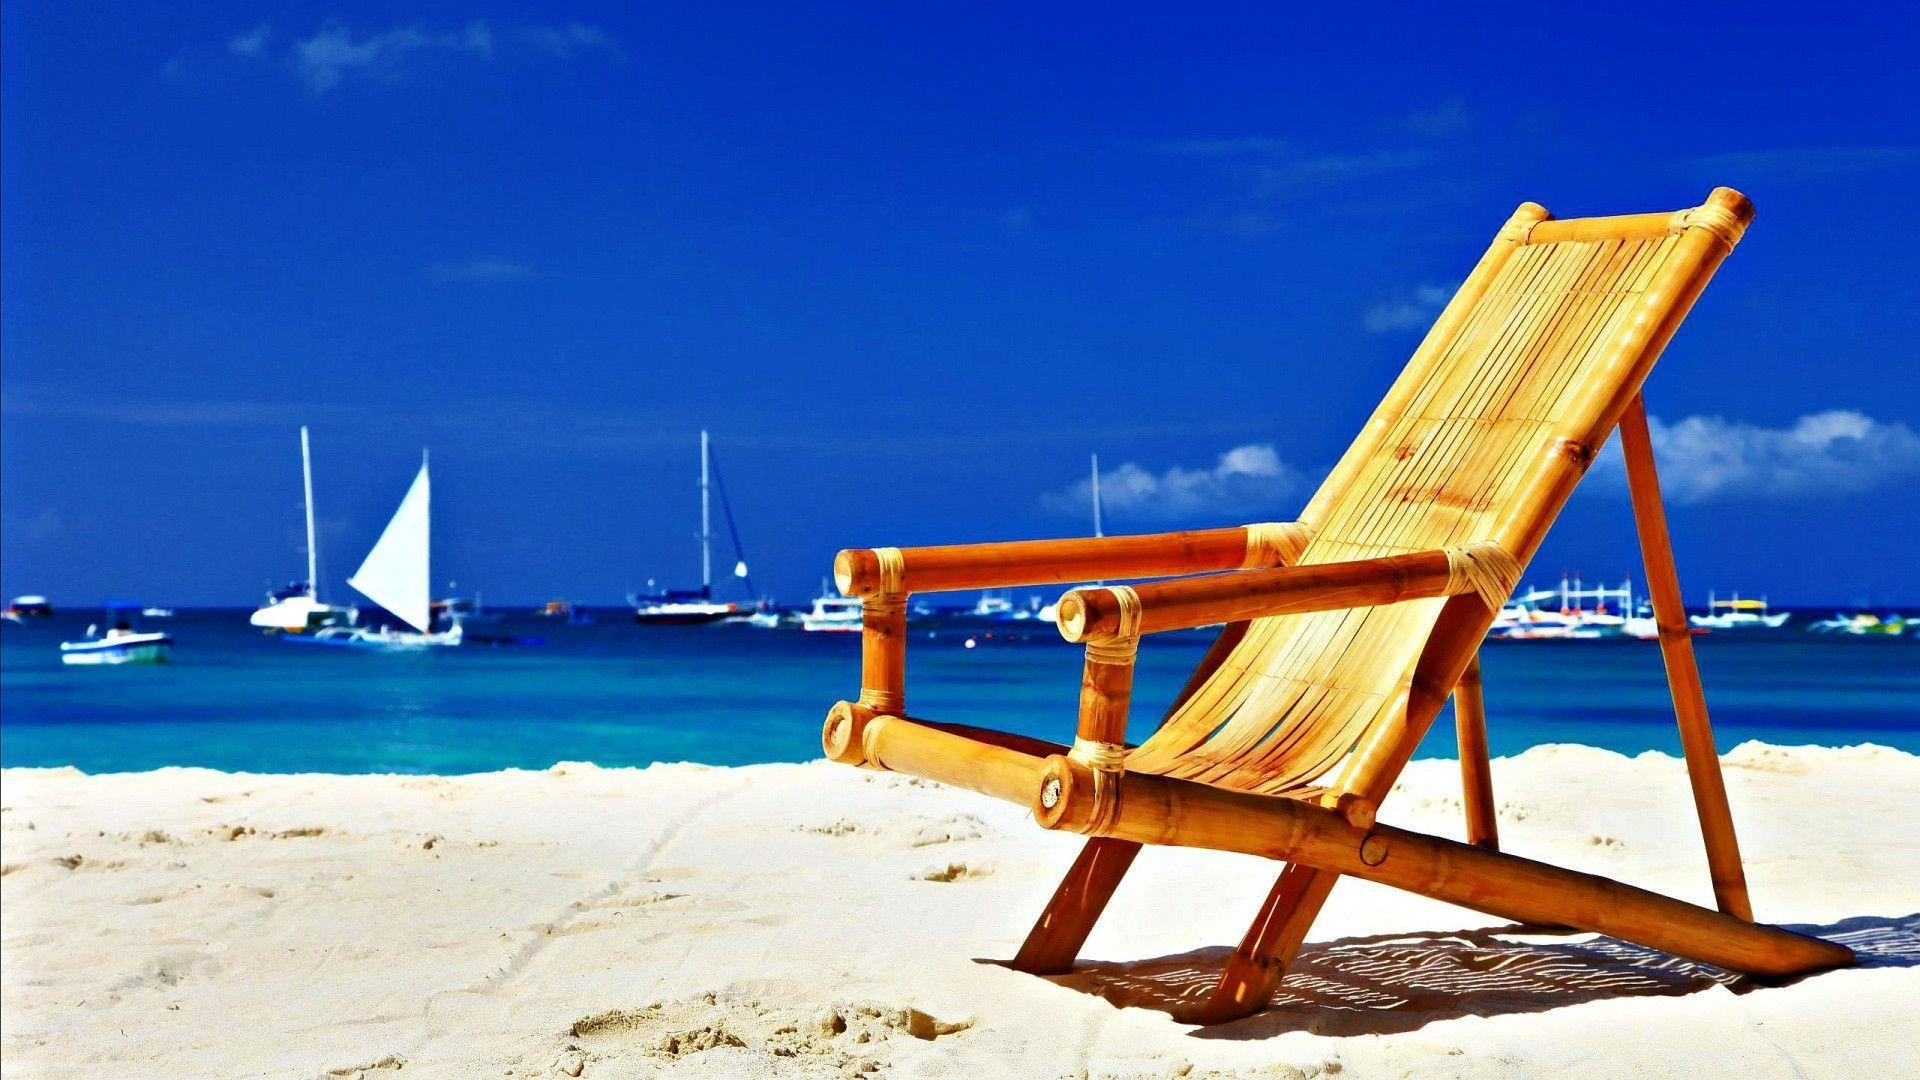 chair images hd small chaise lounge chairs for bedroom uk beach wallpapers wallpaper cave